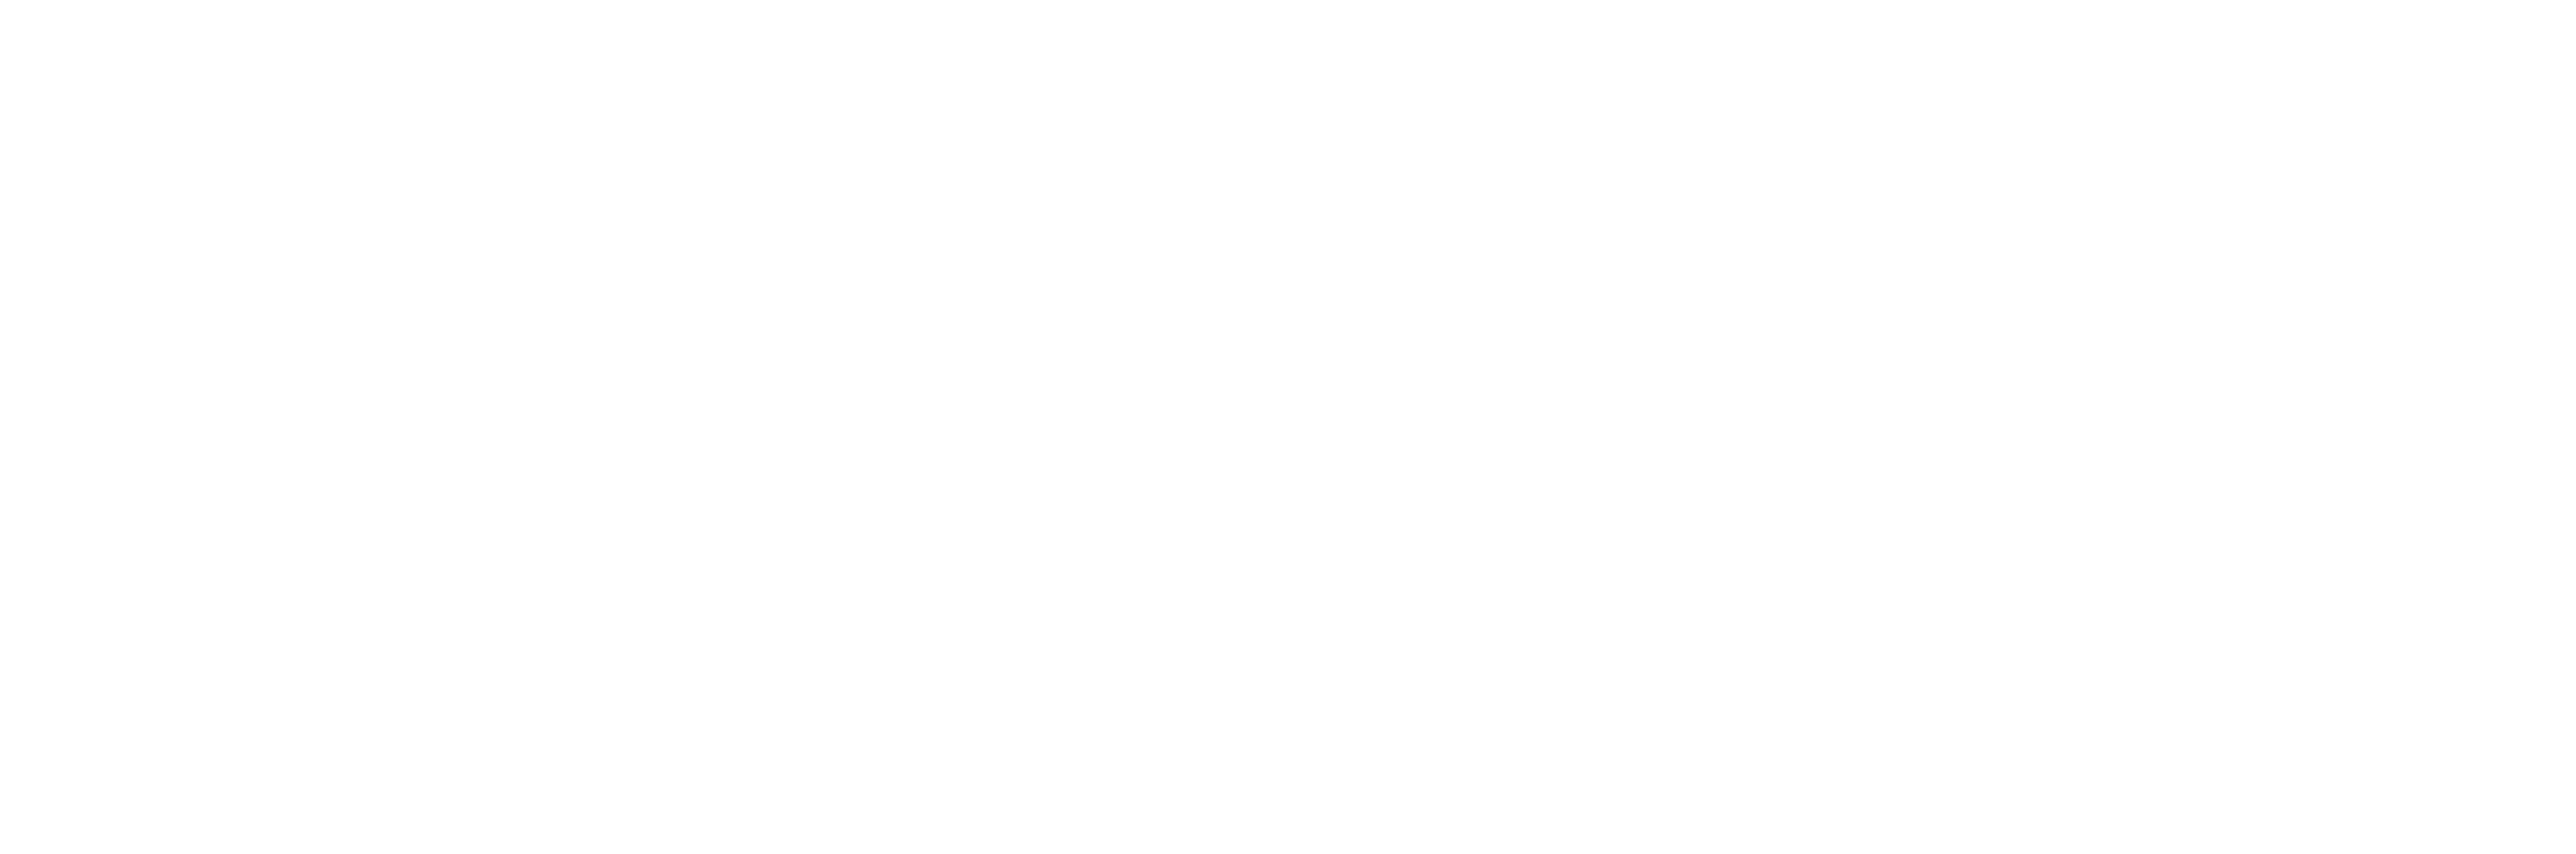 Starlight Casino | Gaming Restaurants Sports Live Entertainment | New Westminster BC Canada